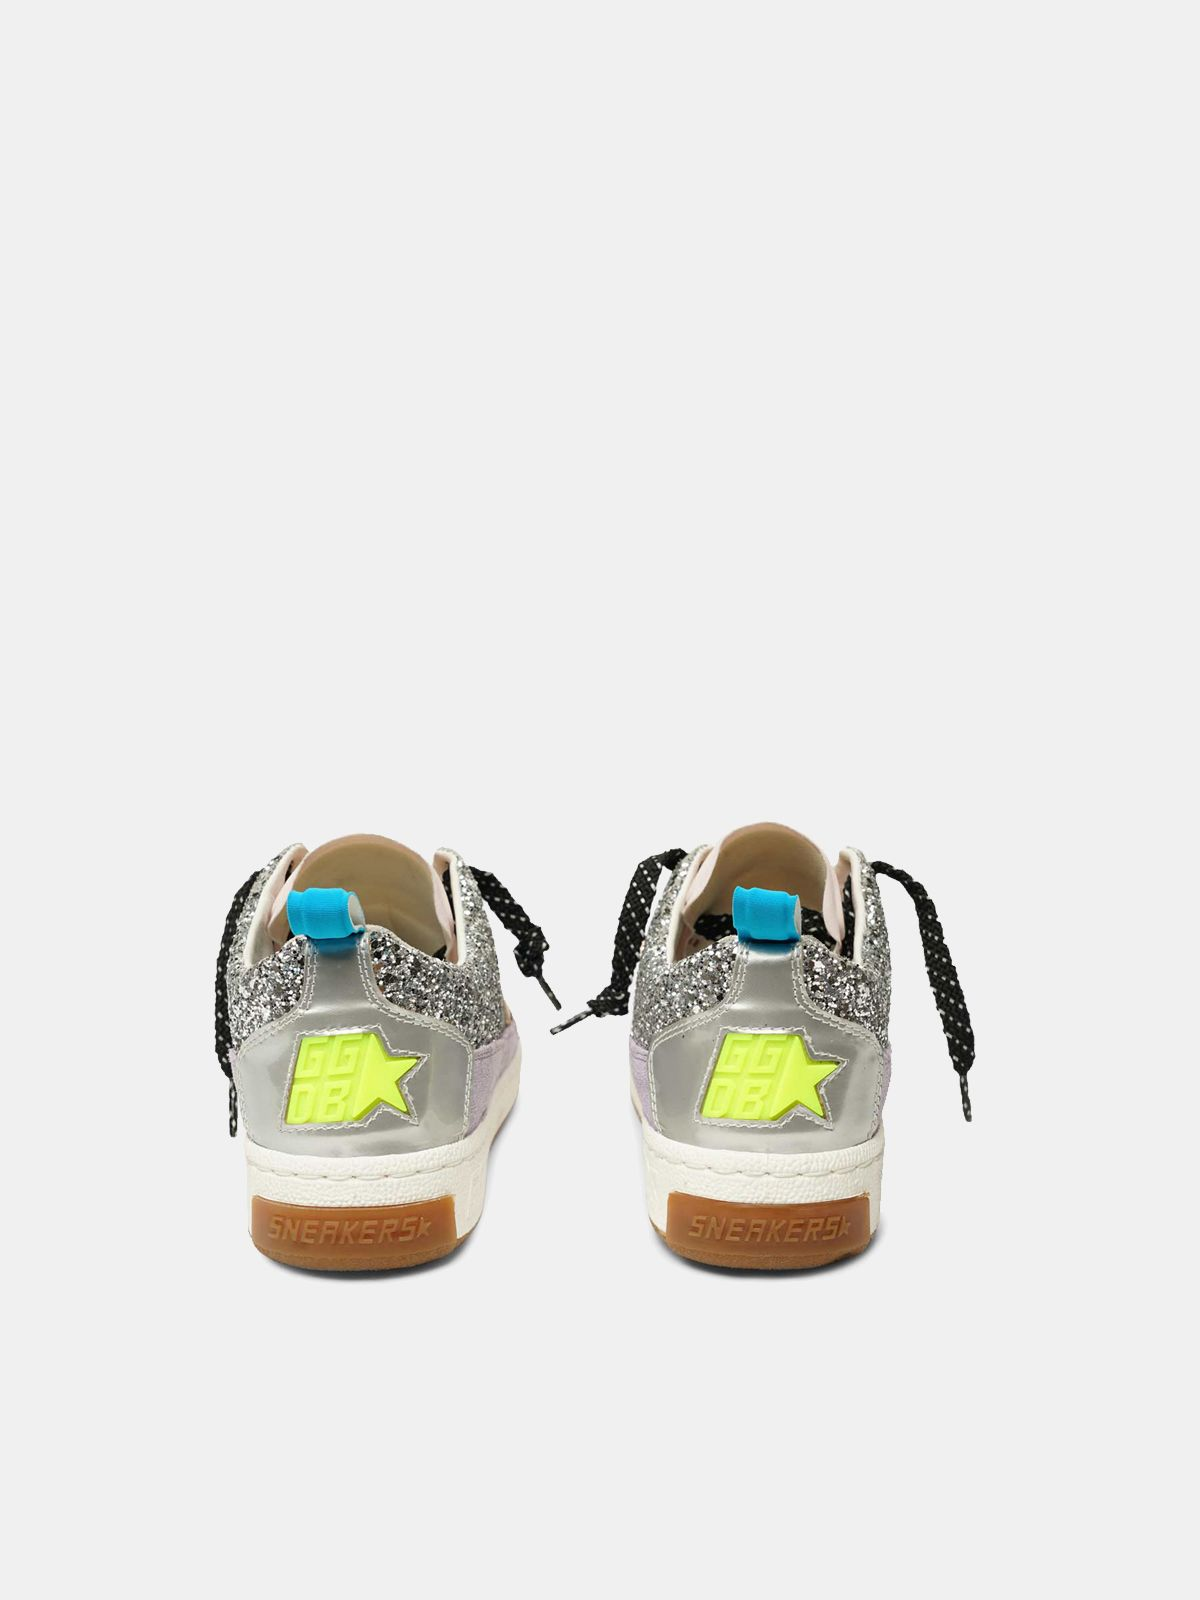 Golden Goose - Sneakers Yeah! in mesh argento e stella rosa in